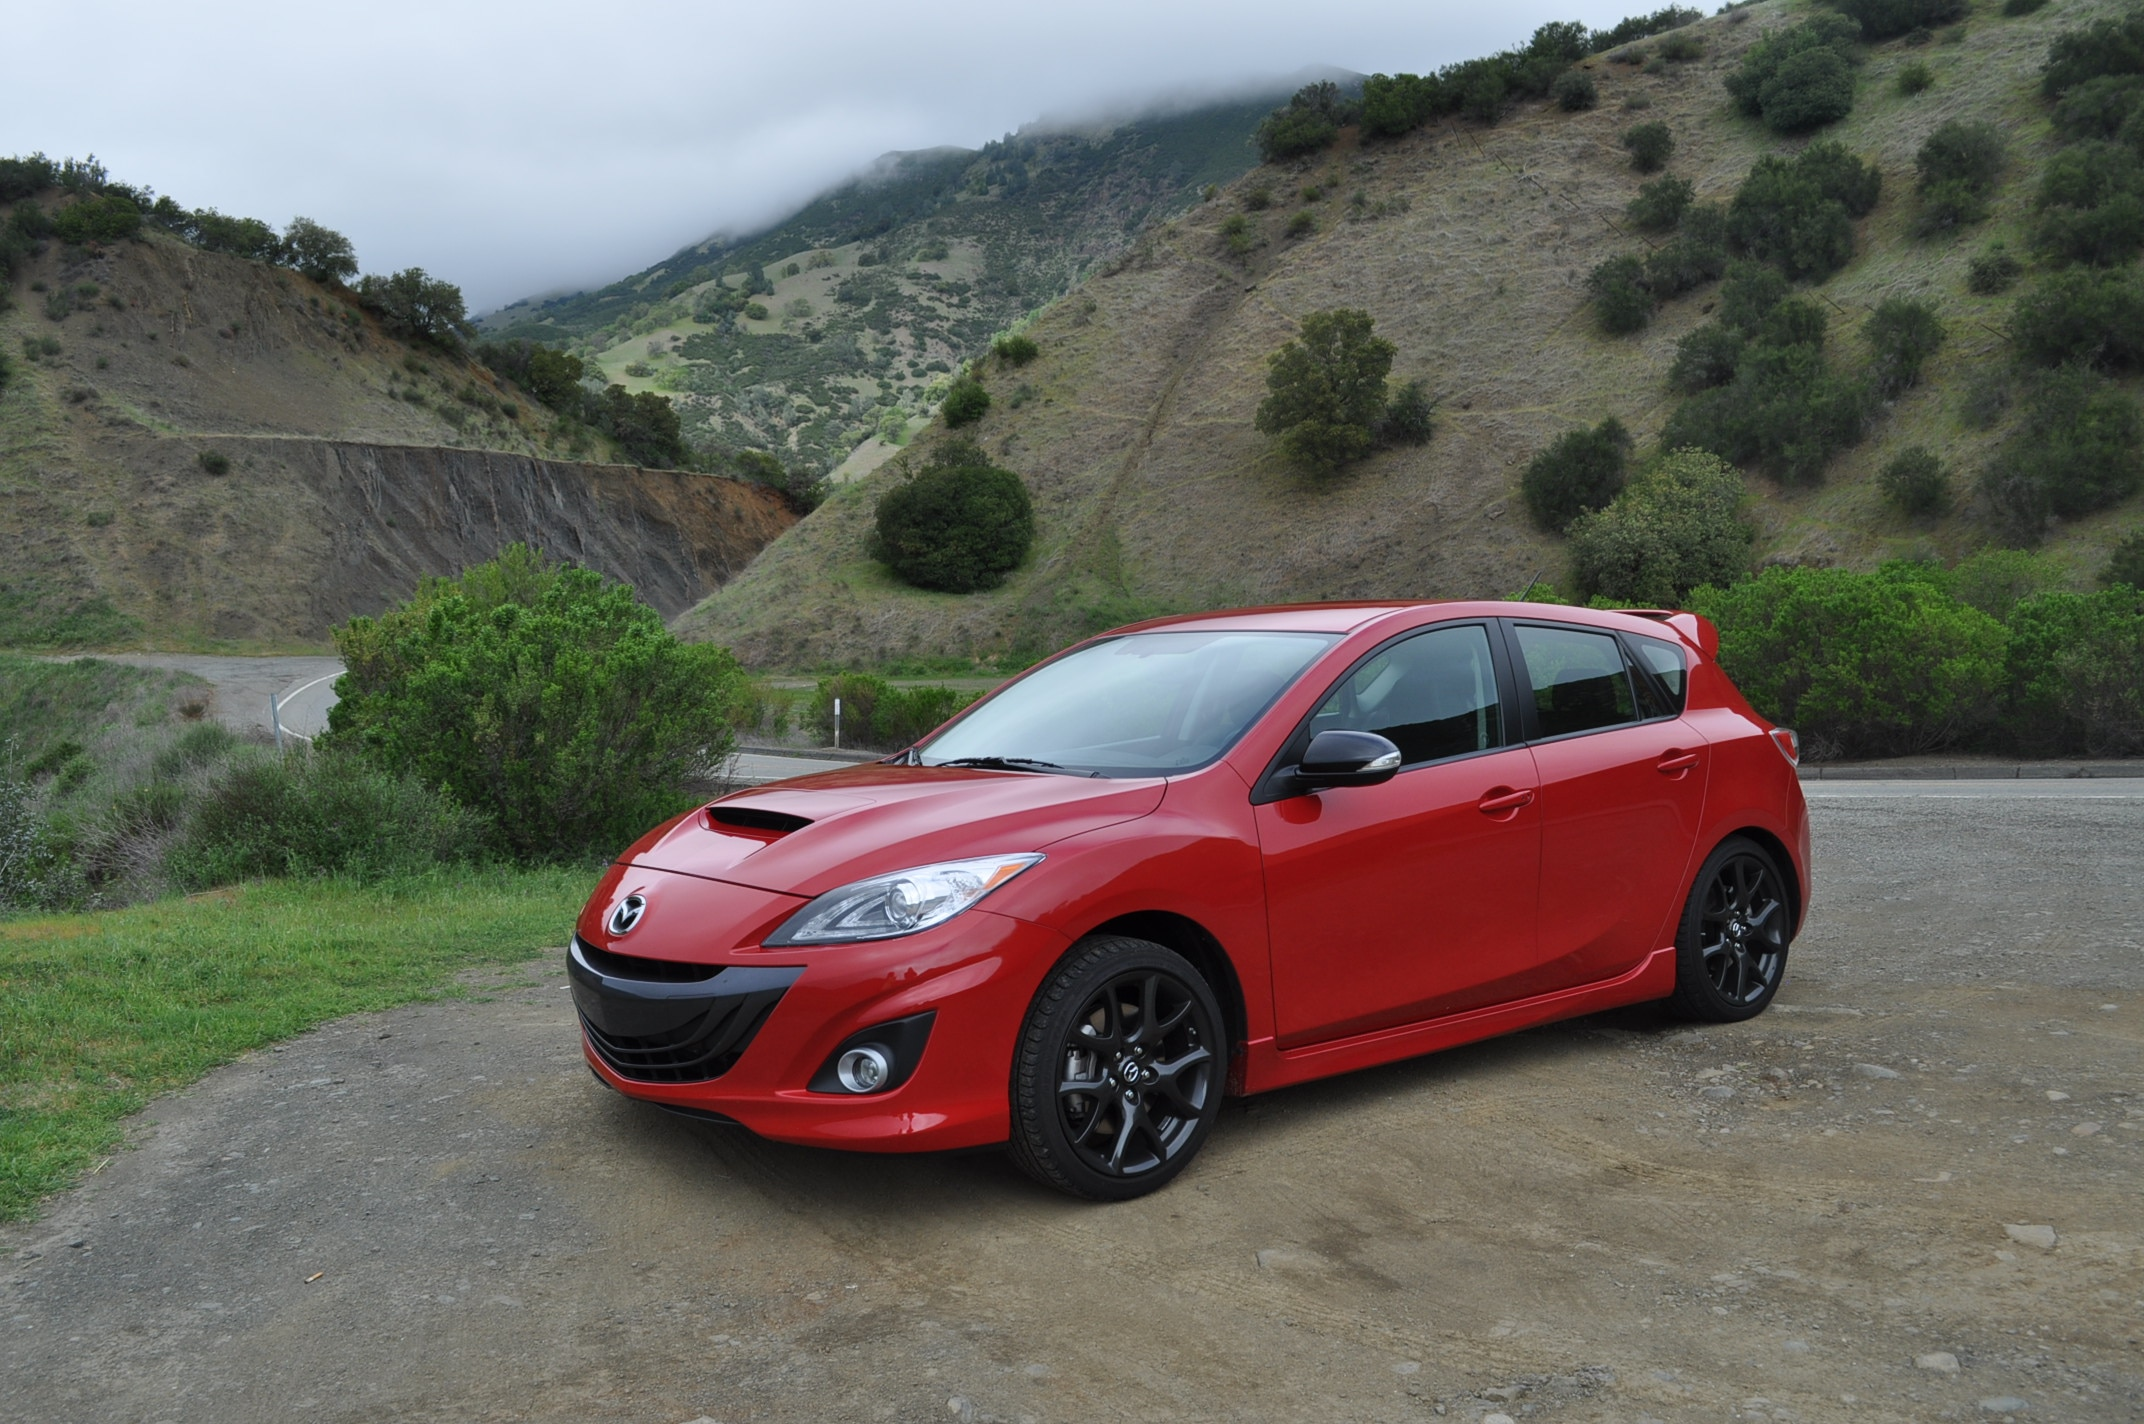 2013 MazdaSpeed3 Road Test and Review